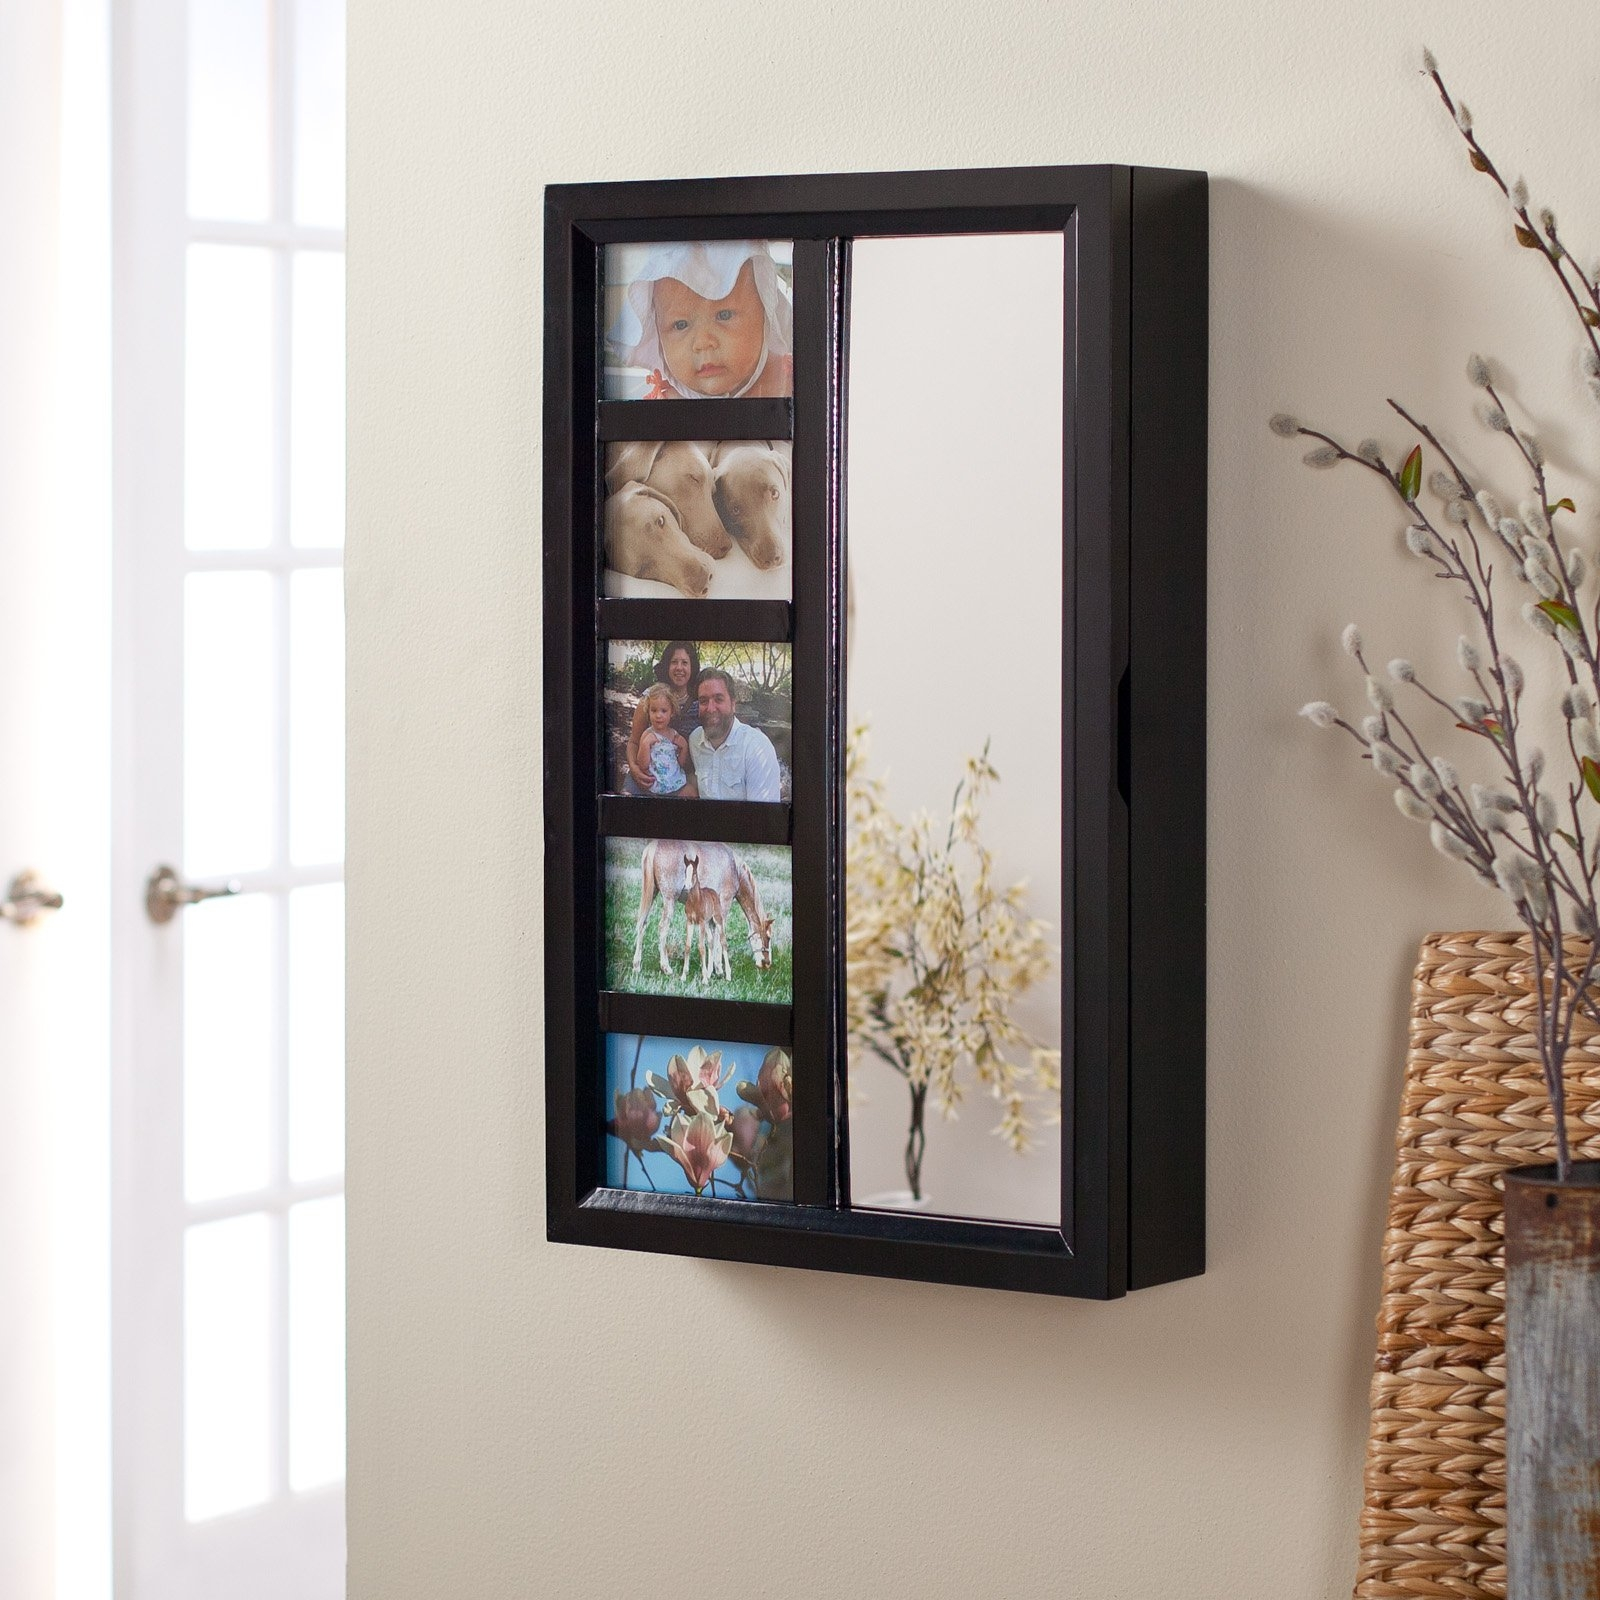 Permalink to Wall Mounted Jewelry Box Mirror